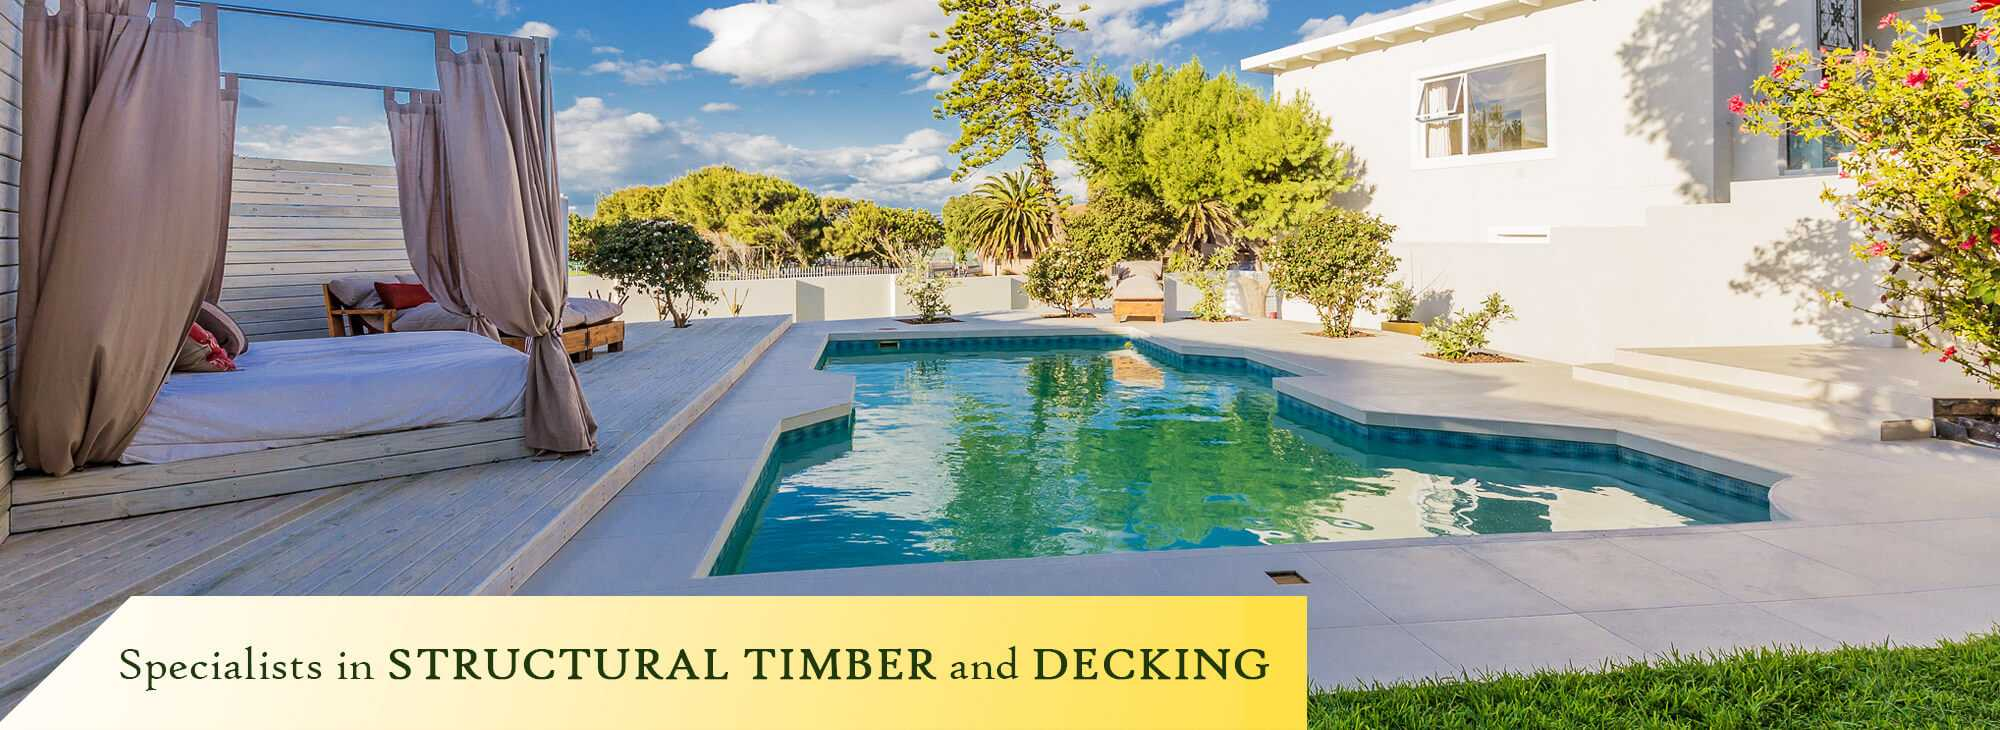 Structural timber and decking available at The Pole Yard